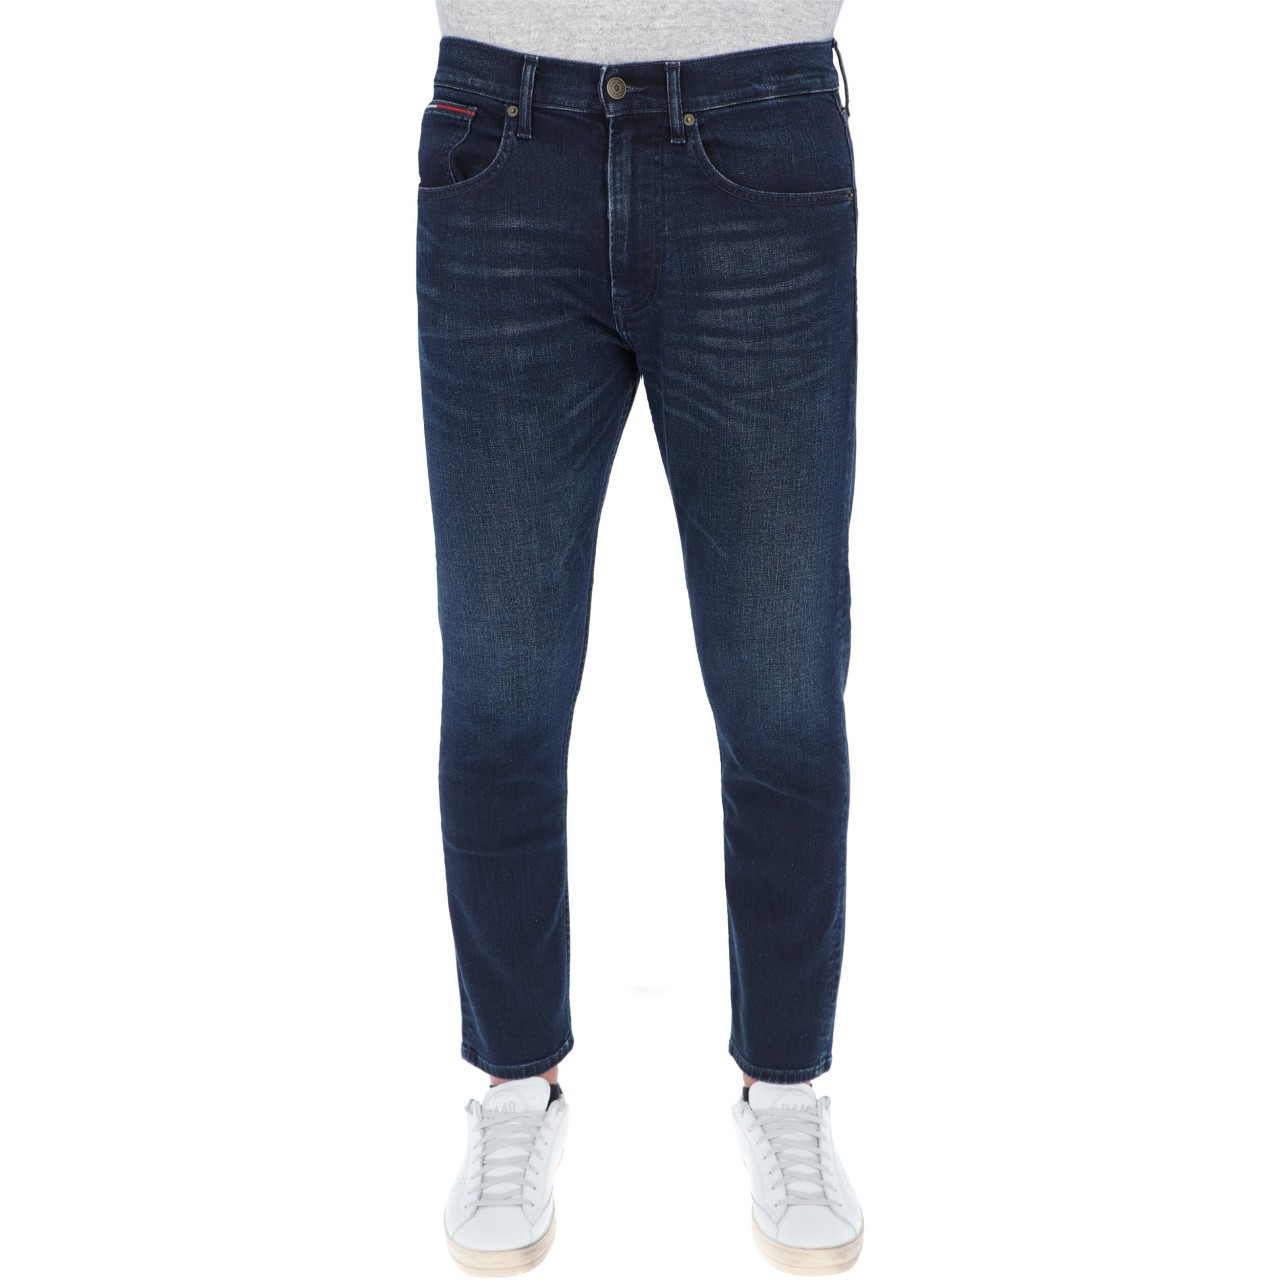 Tommy hilfiger Uomo Jeans Tommy Hilfiger Jeans Uomo Rey Relaxed Taper L32 11108Q